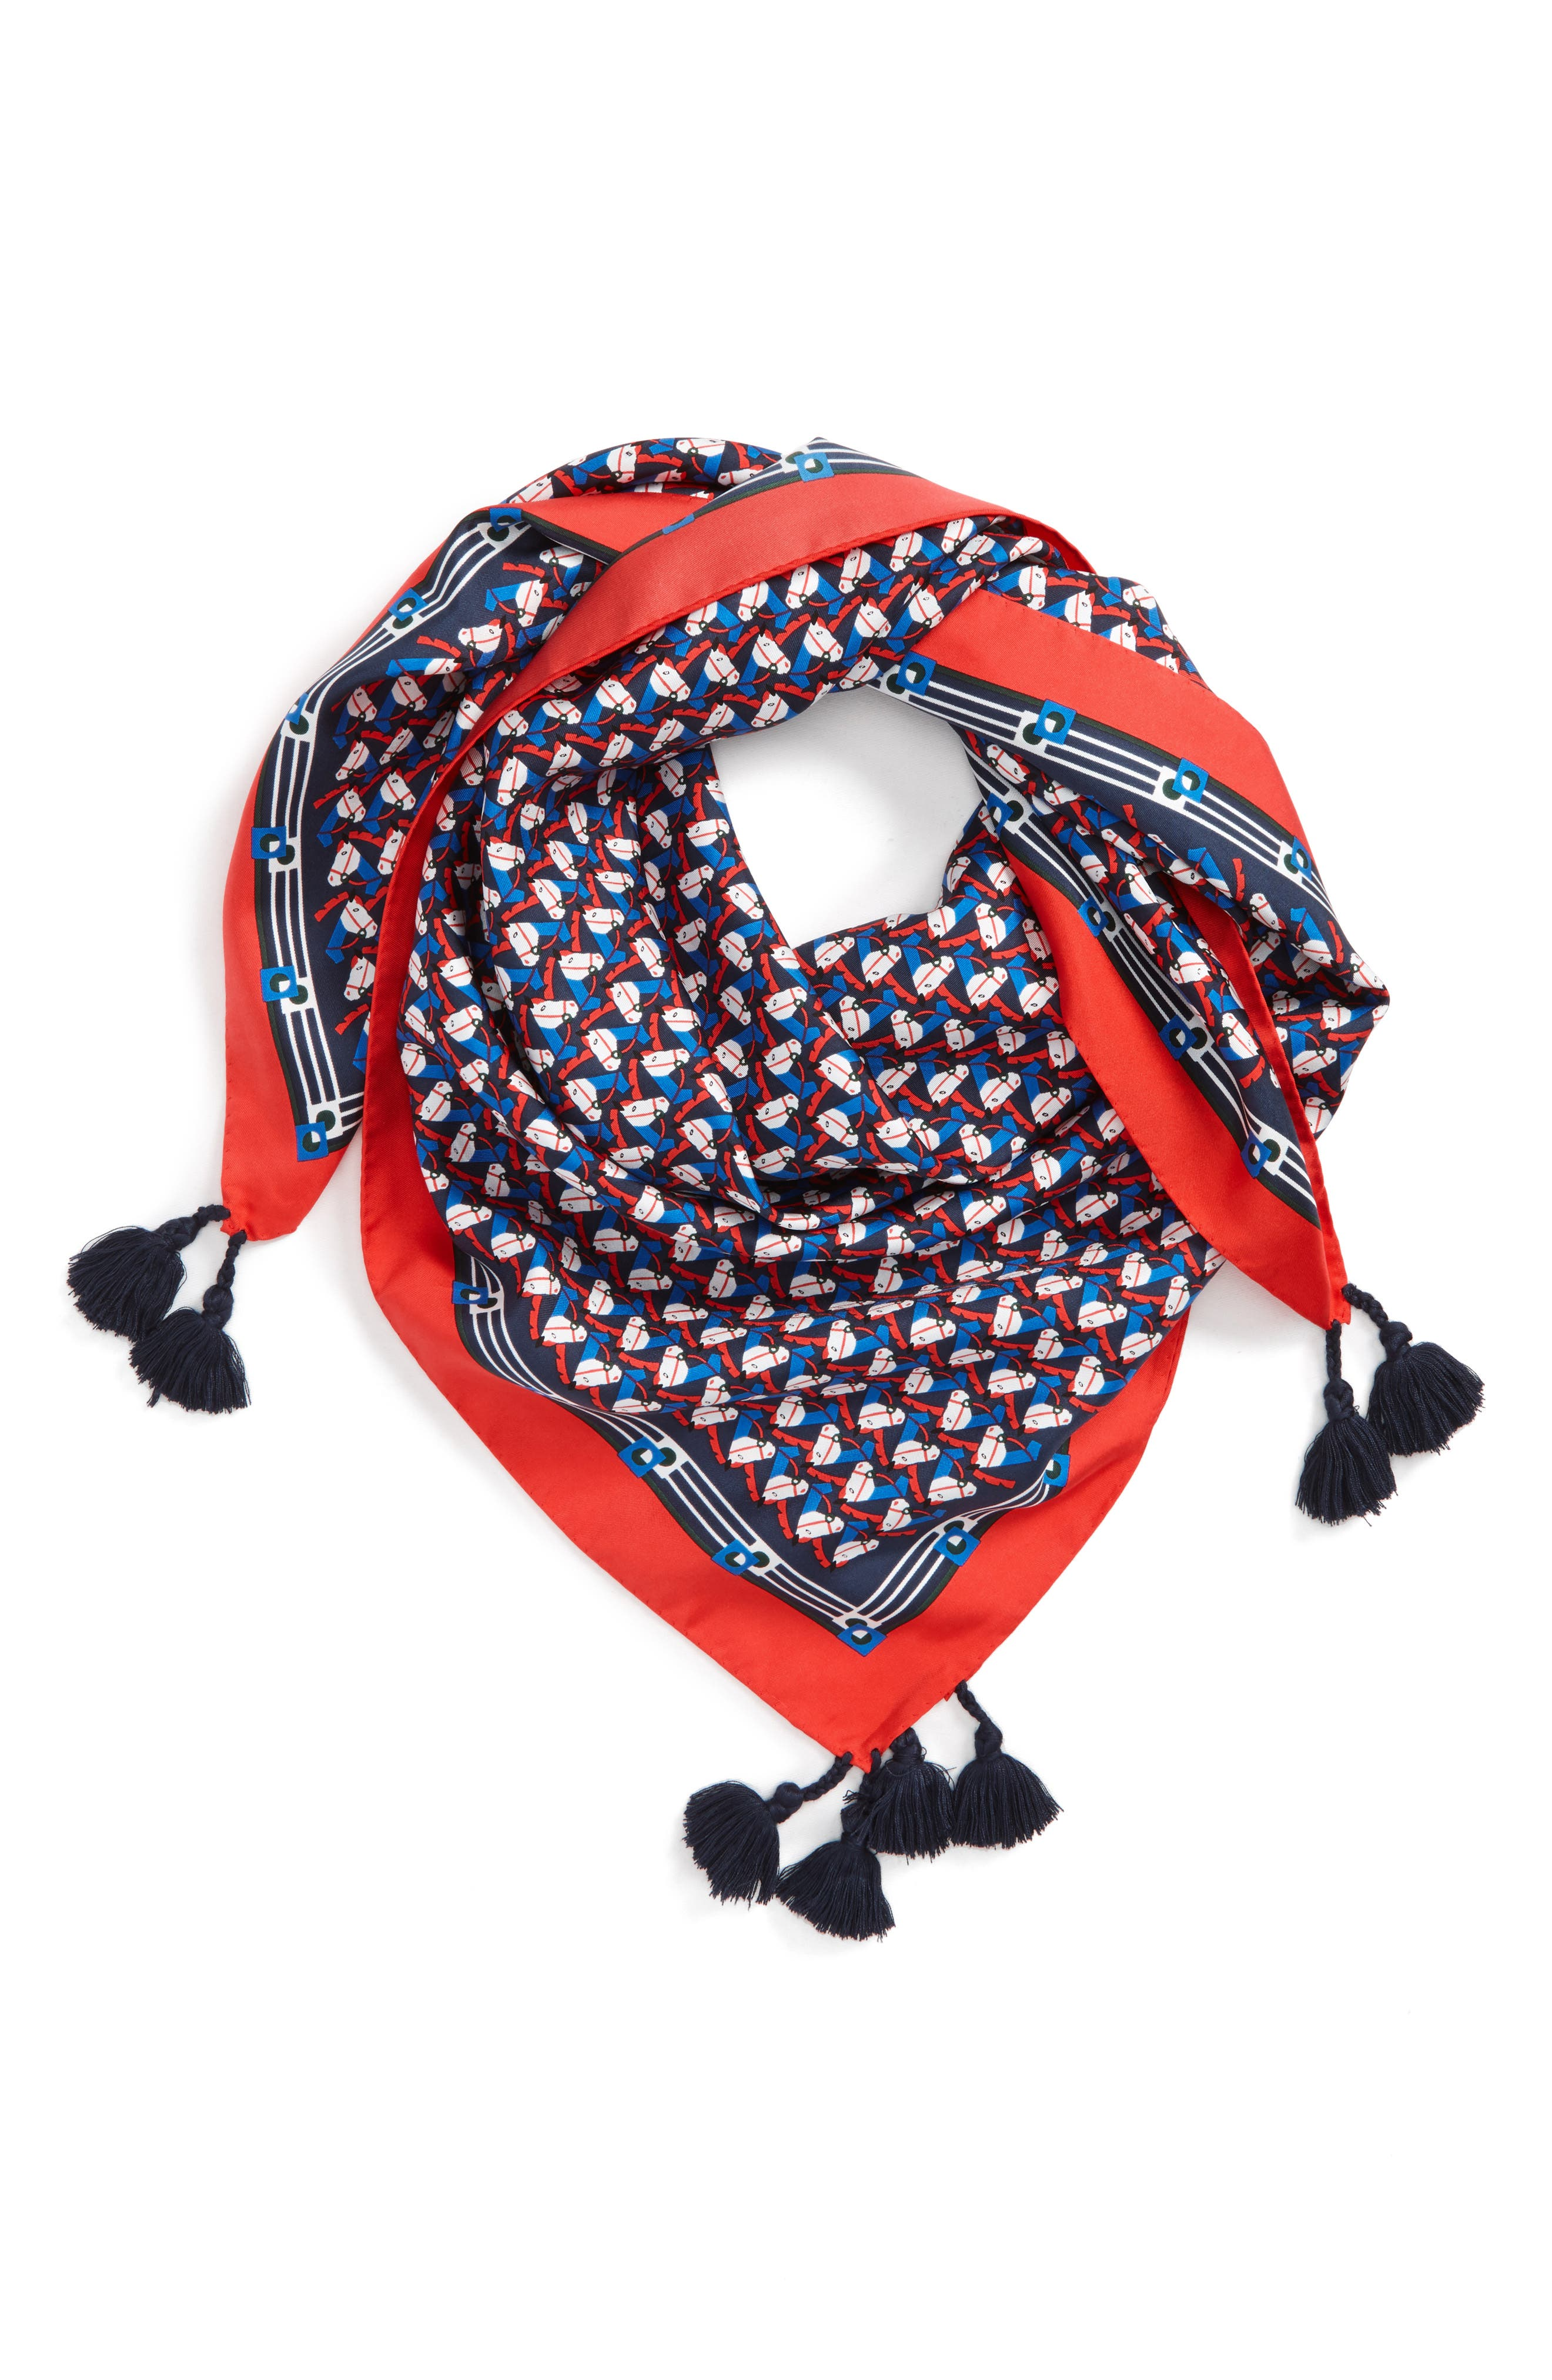 Stallion Silk Square Scarf with Tassels,                             Main thumbnail 1, color,                             400